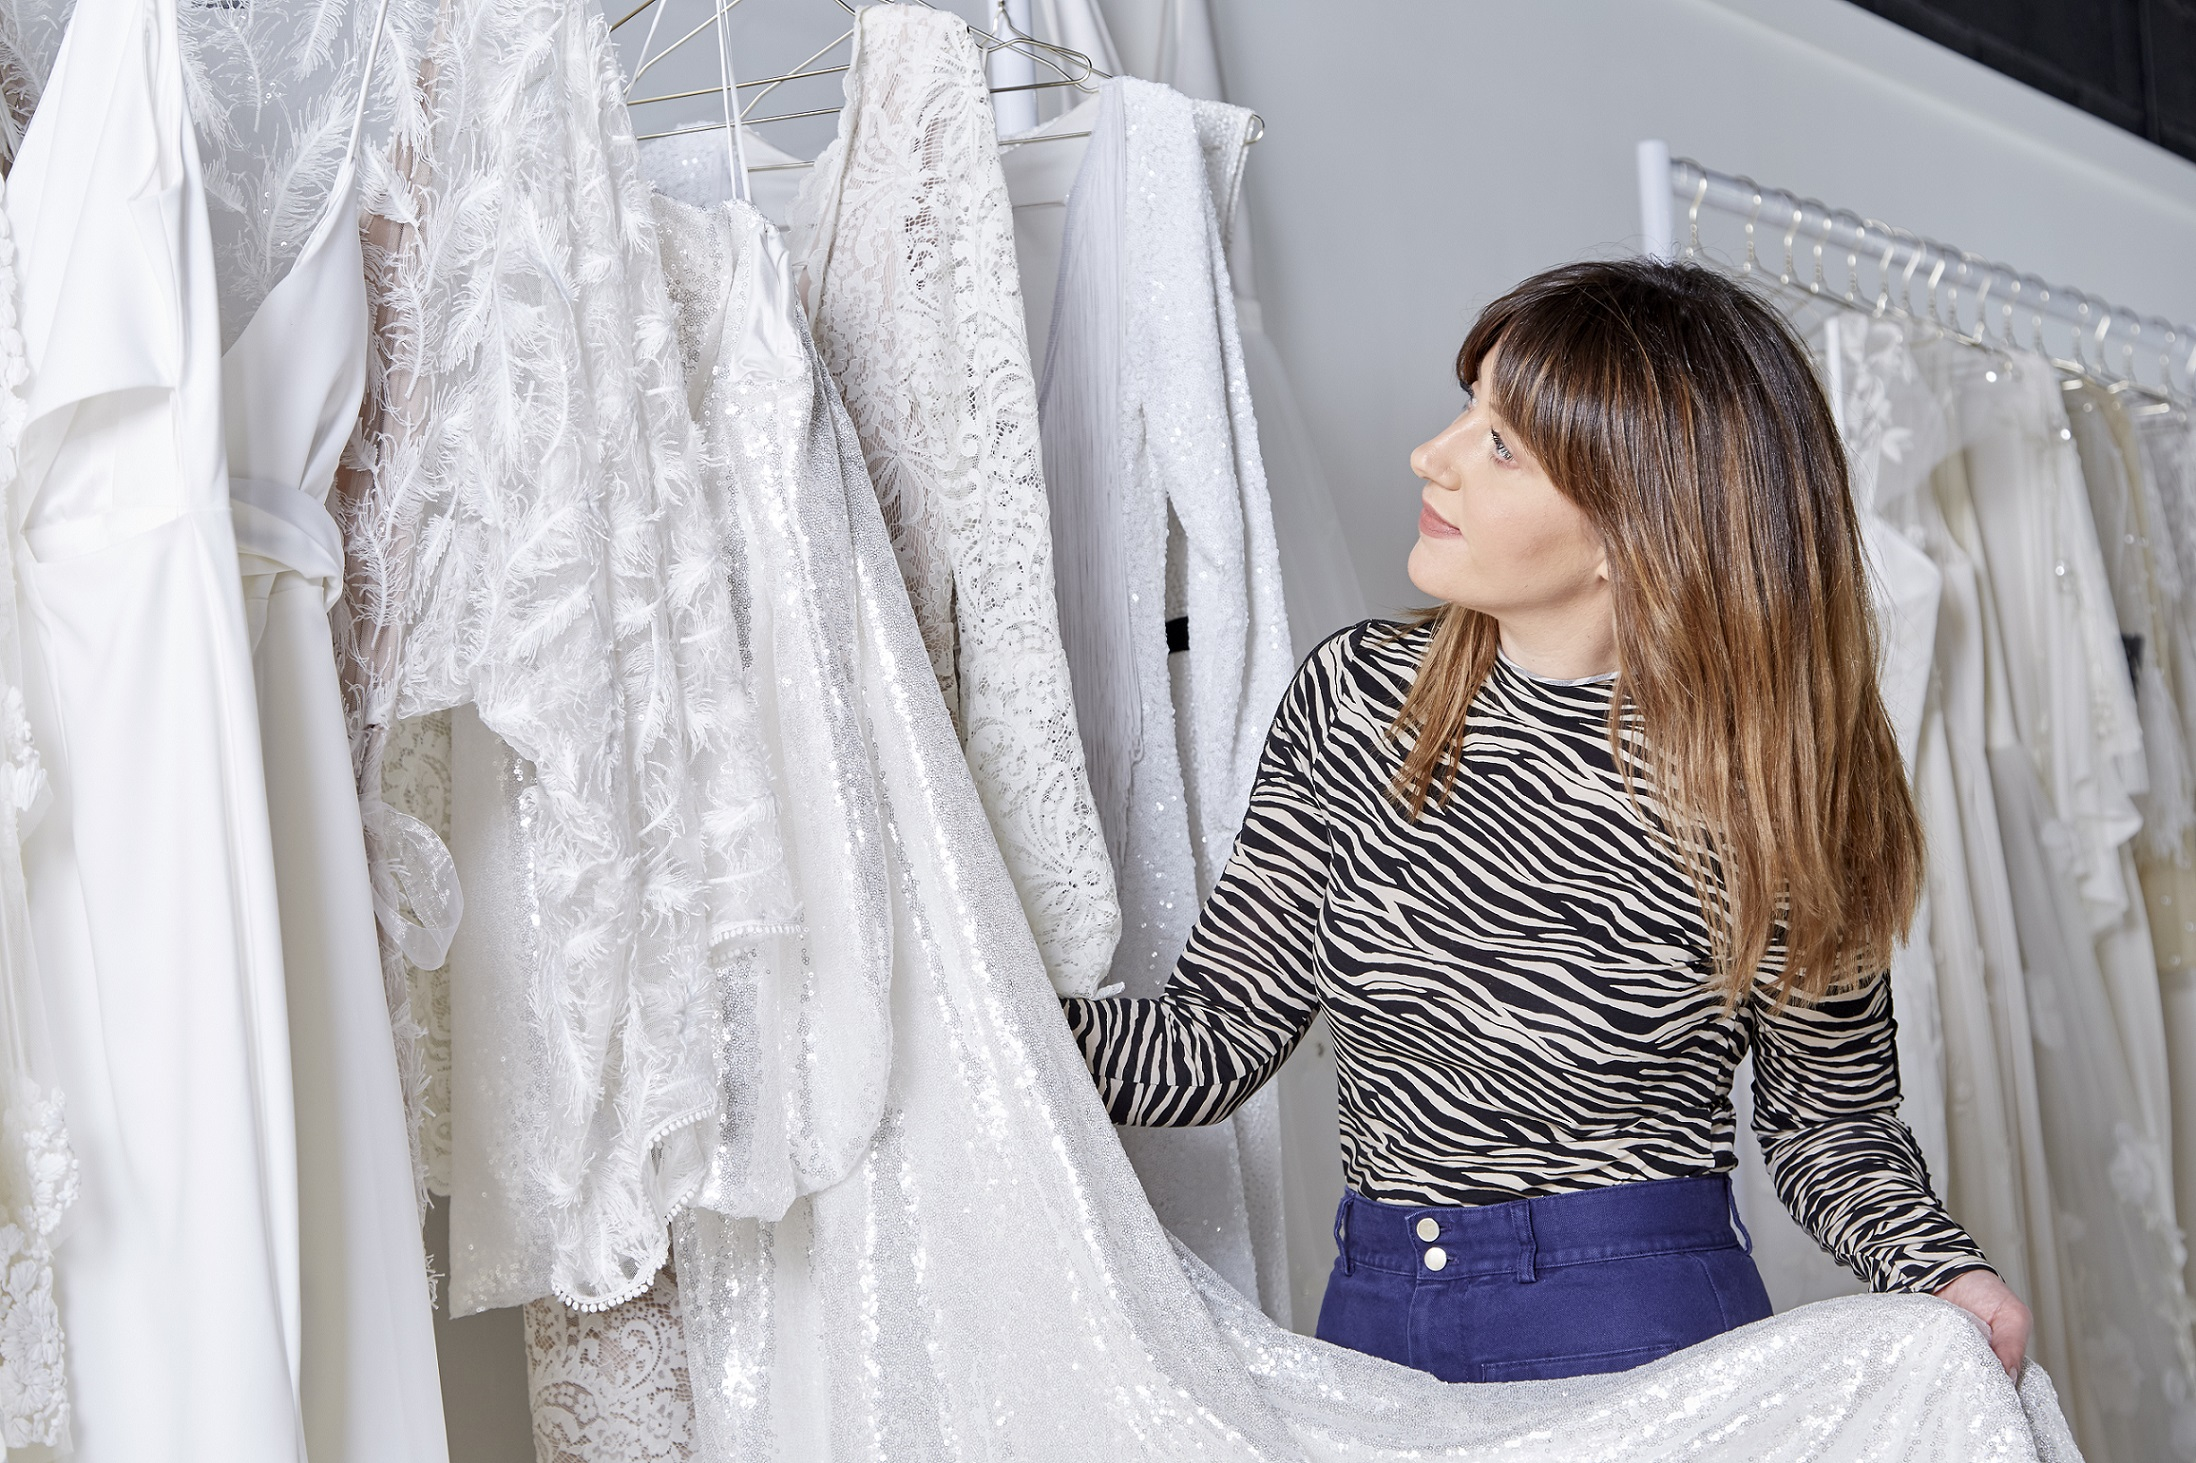 The bridal boutique features dresses by top bridal designers such as Alexandra Grecco; Daughters of Simone; And For Love; and Chantel Lauren.